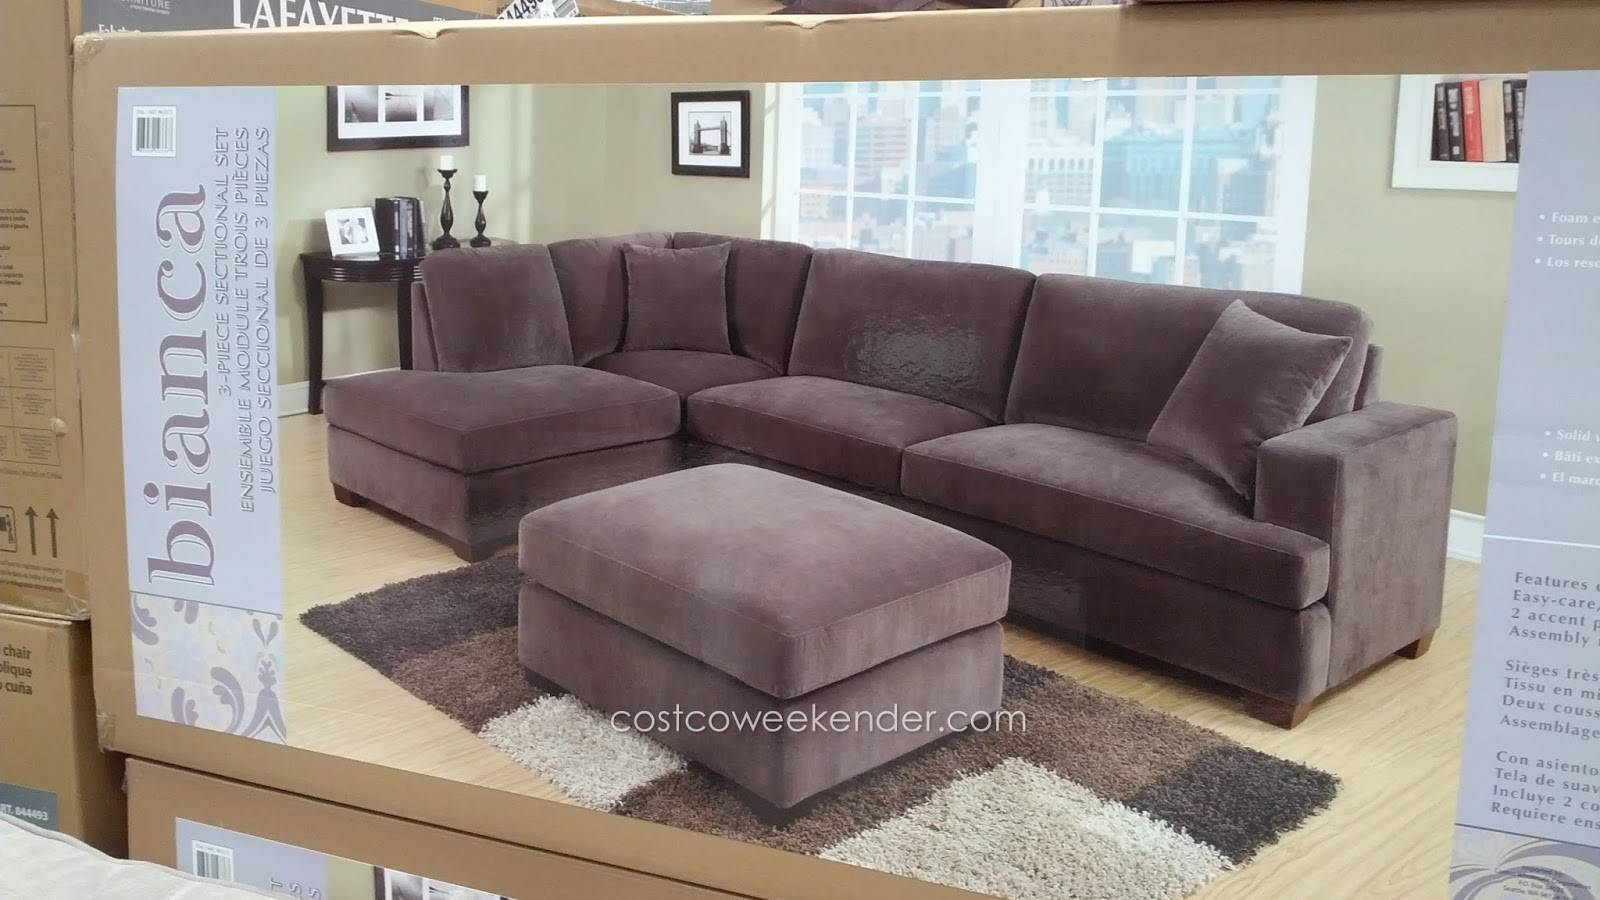 Furniture: Costco Modular Sectional | Sectionals Costco | Costco for Costco Leather Sectional Sofas (Image 3 of 15)